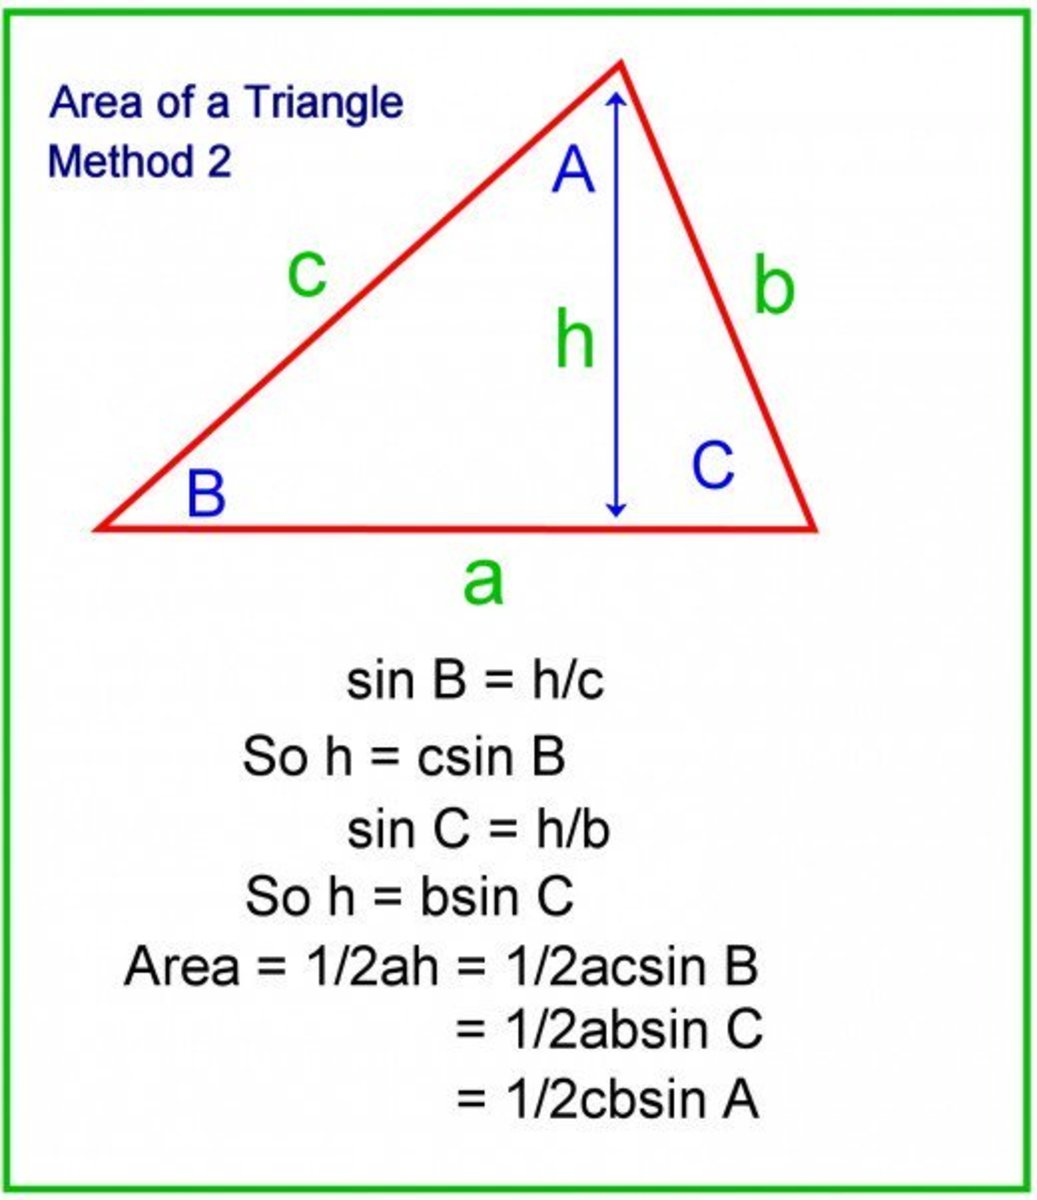 Area = 1/2 the product of the sides multiplied by the sine of the included angle.